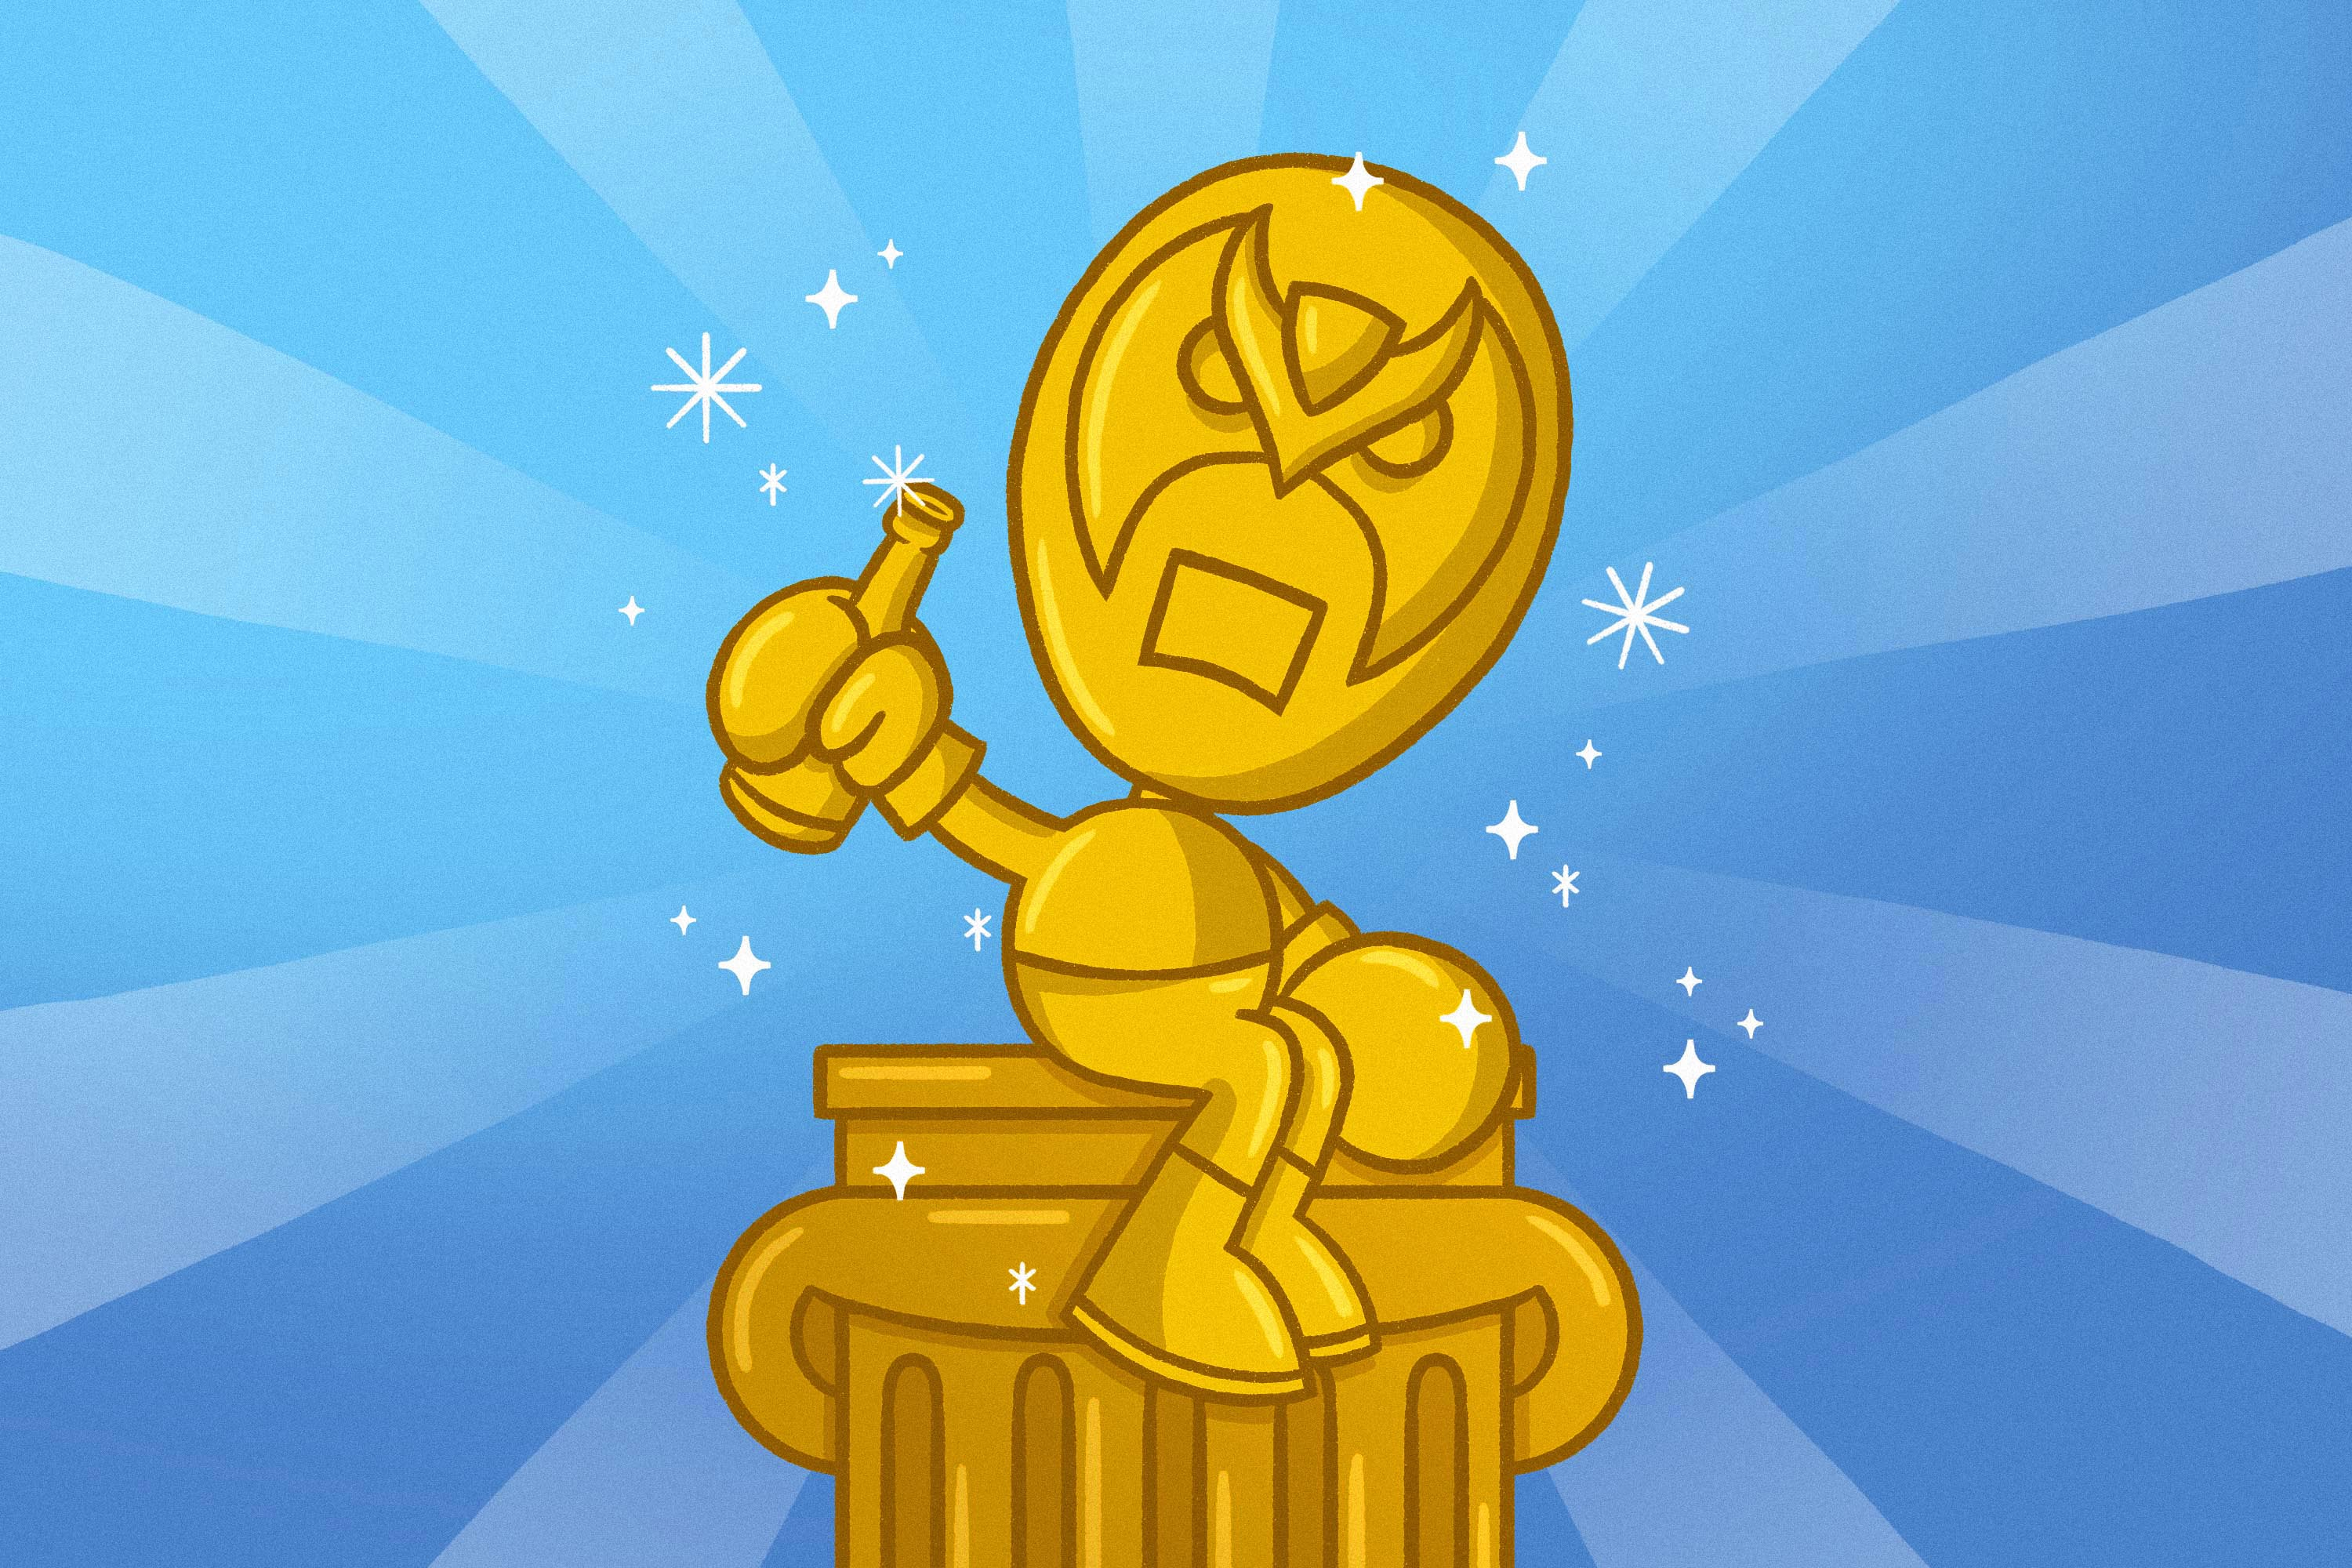 gold version of the Strong Bad character sits atop a gold column